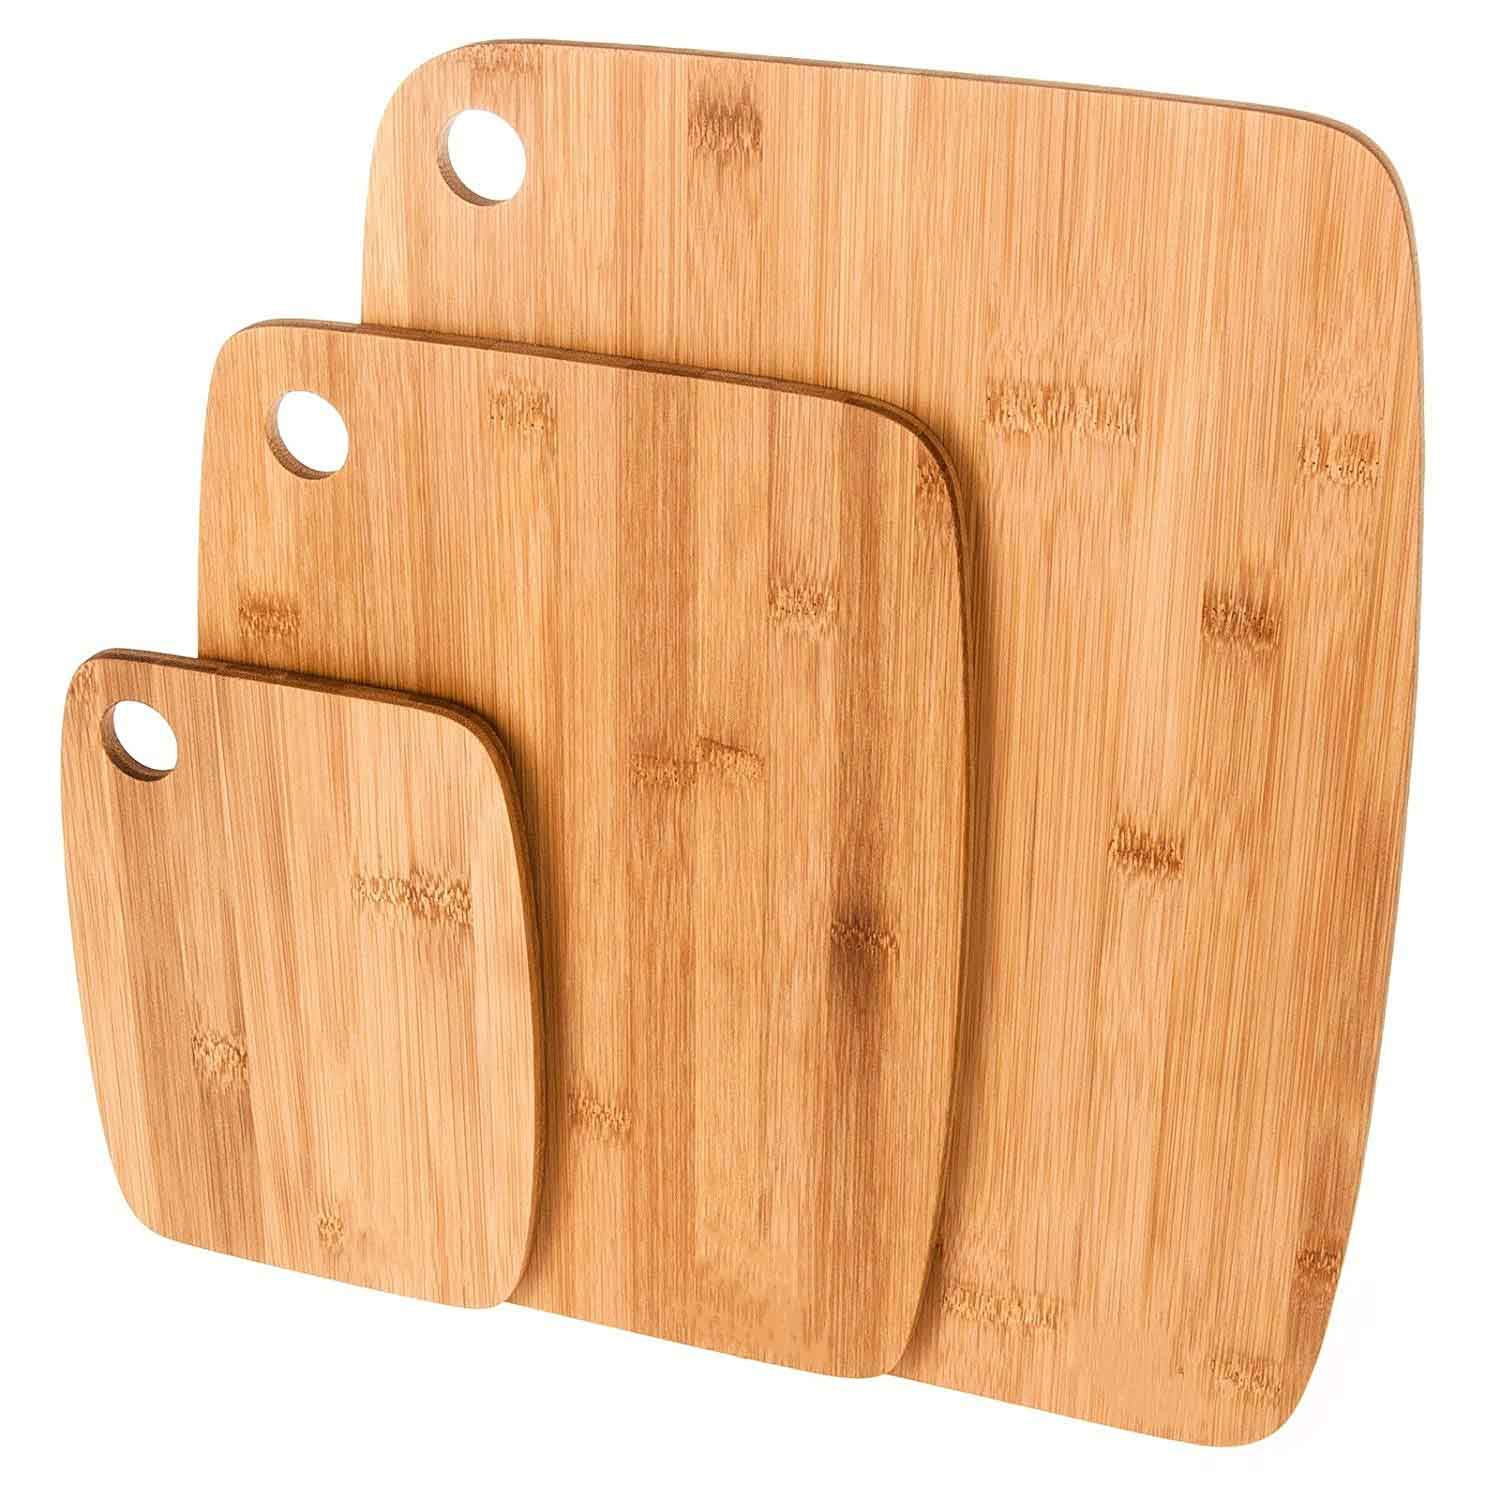 3 Piece Bamboo Wooden Chopping Cutting Board Kitchen Set